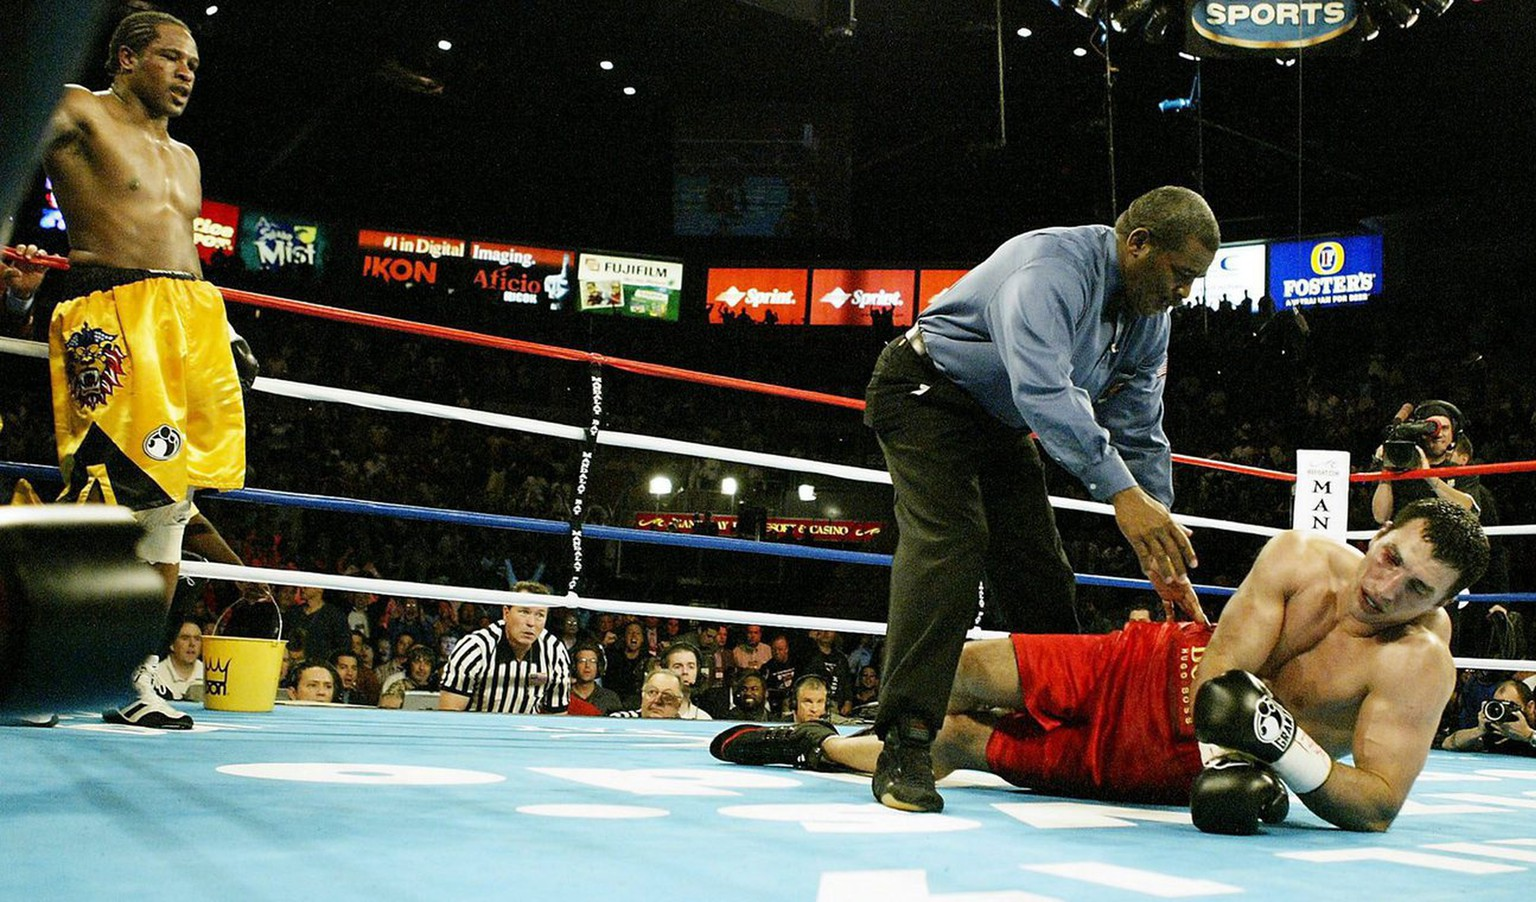 American Lamon Brewster (L) awaits the outcome as Wladimir Klitschko of the Ukraine  lies on the canvas as referee Robert Byrd starts the count in fifth round of their WBO Heavyweight Championship bout in Las Vegas, Saturday 10 April 2004. The fight was stopped as Brewster won by TKO. (KEYSTONE/EPA/BRENDAN MCDERMID)